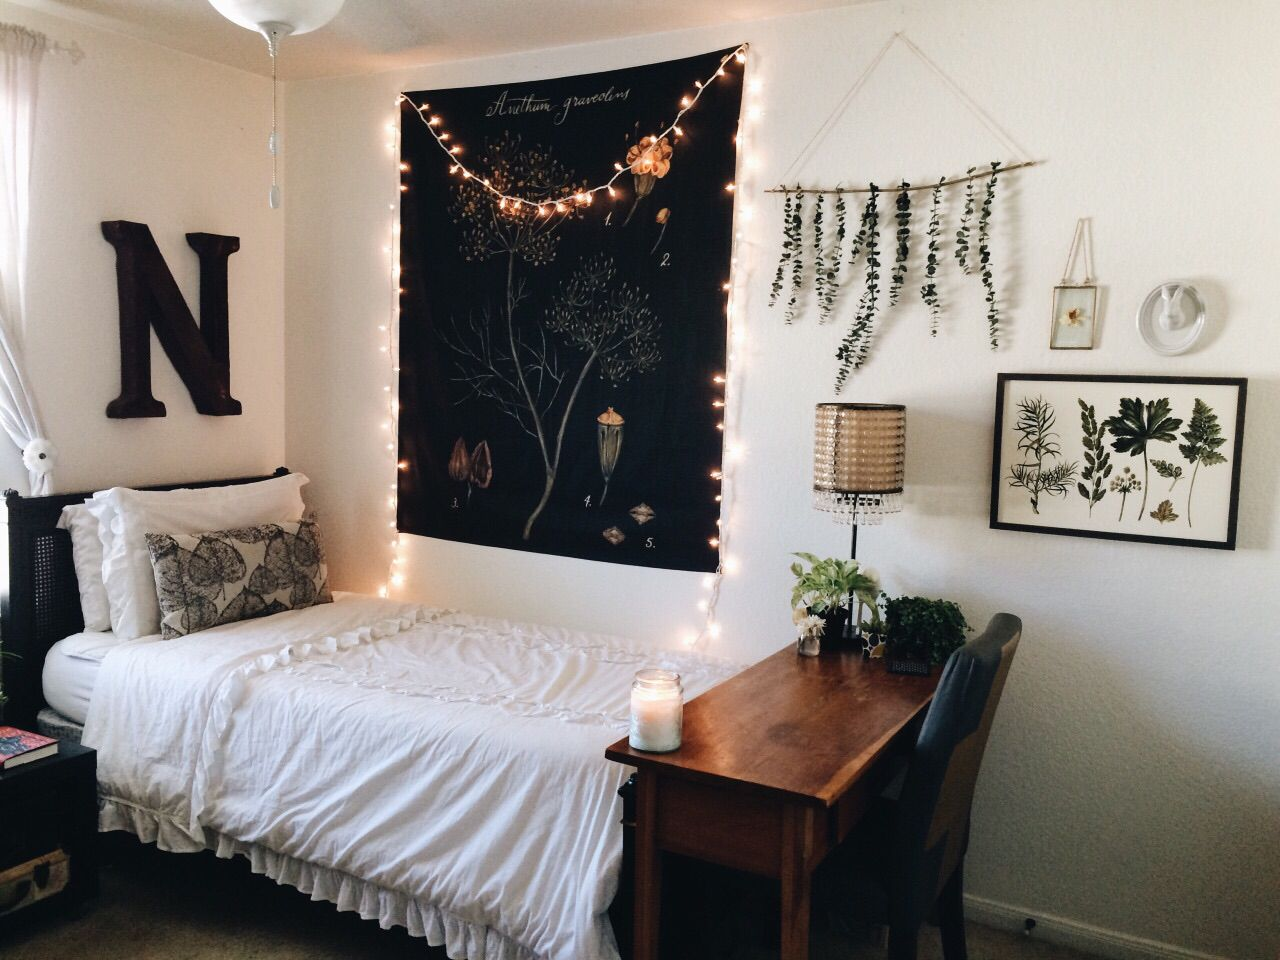 I Love The Wall Decor Of The Hanging Leaves I Want To Make One